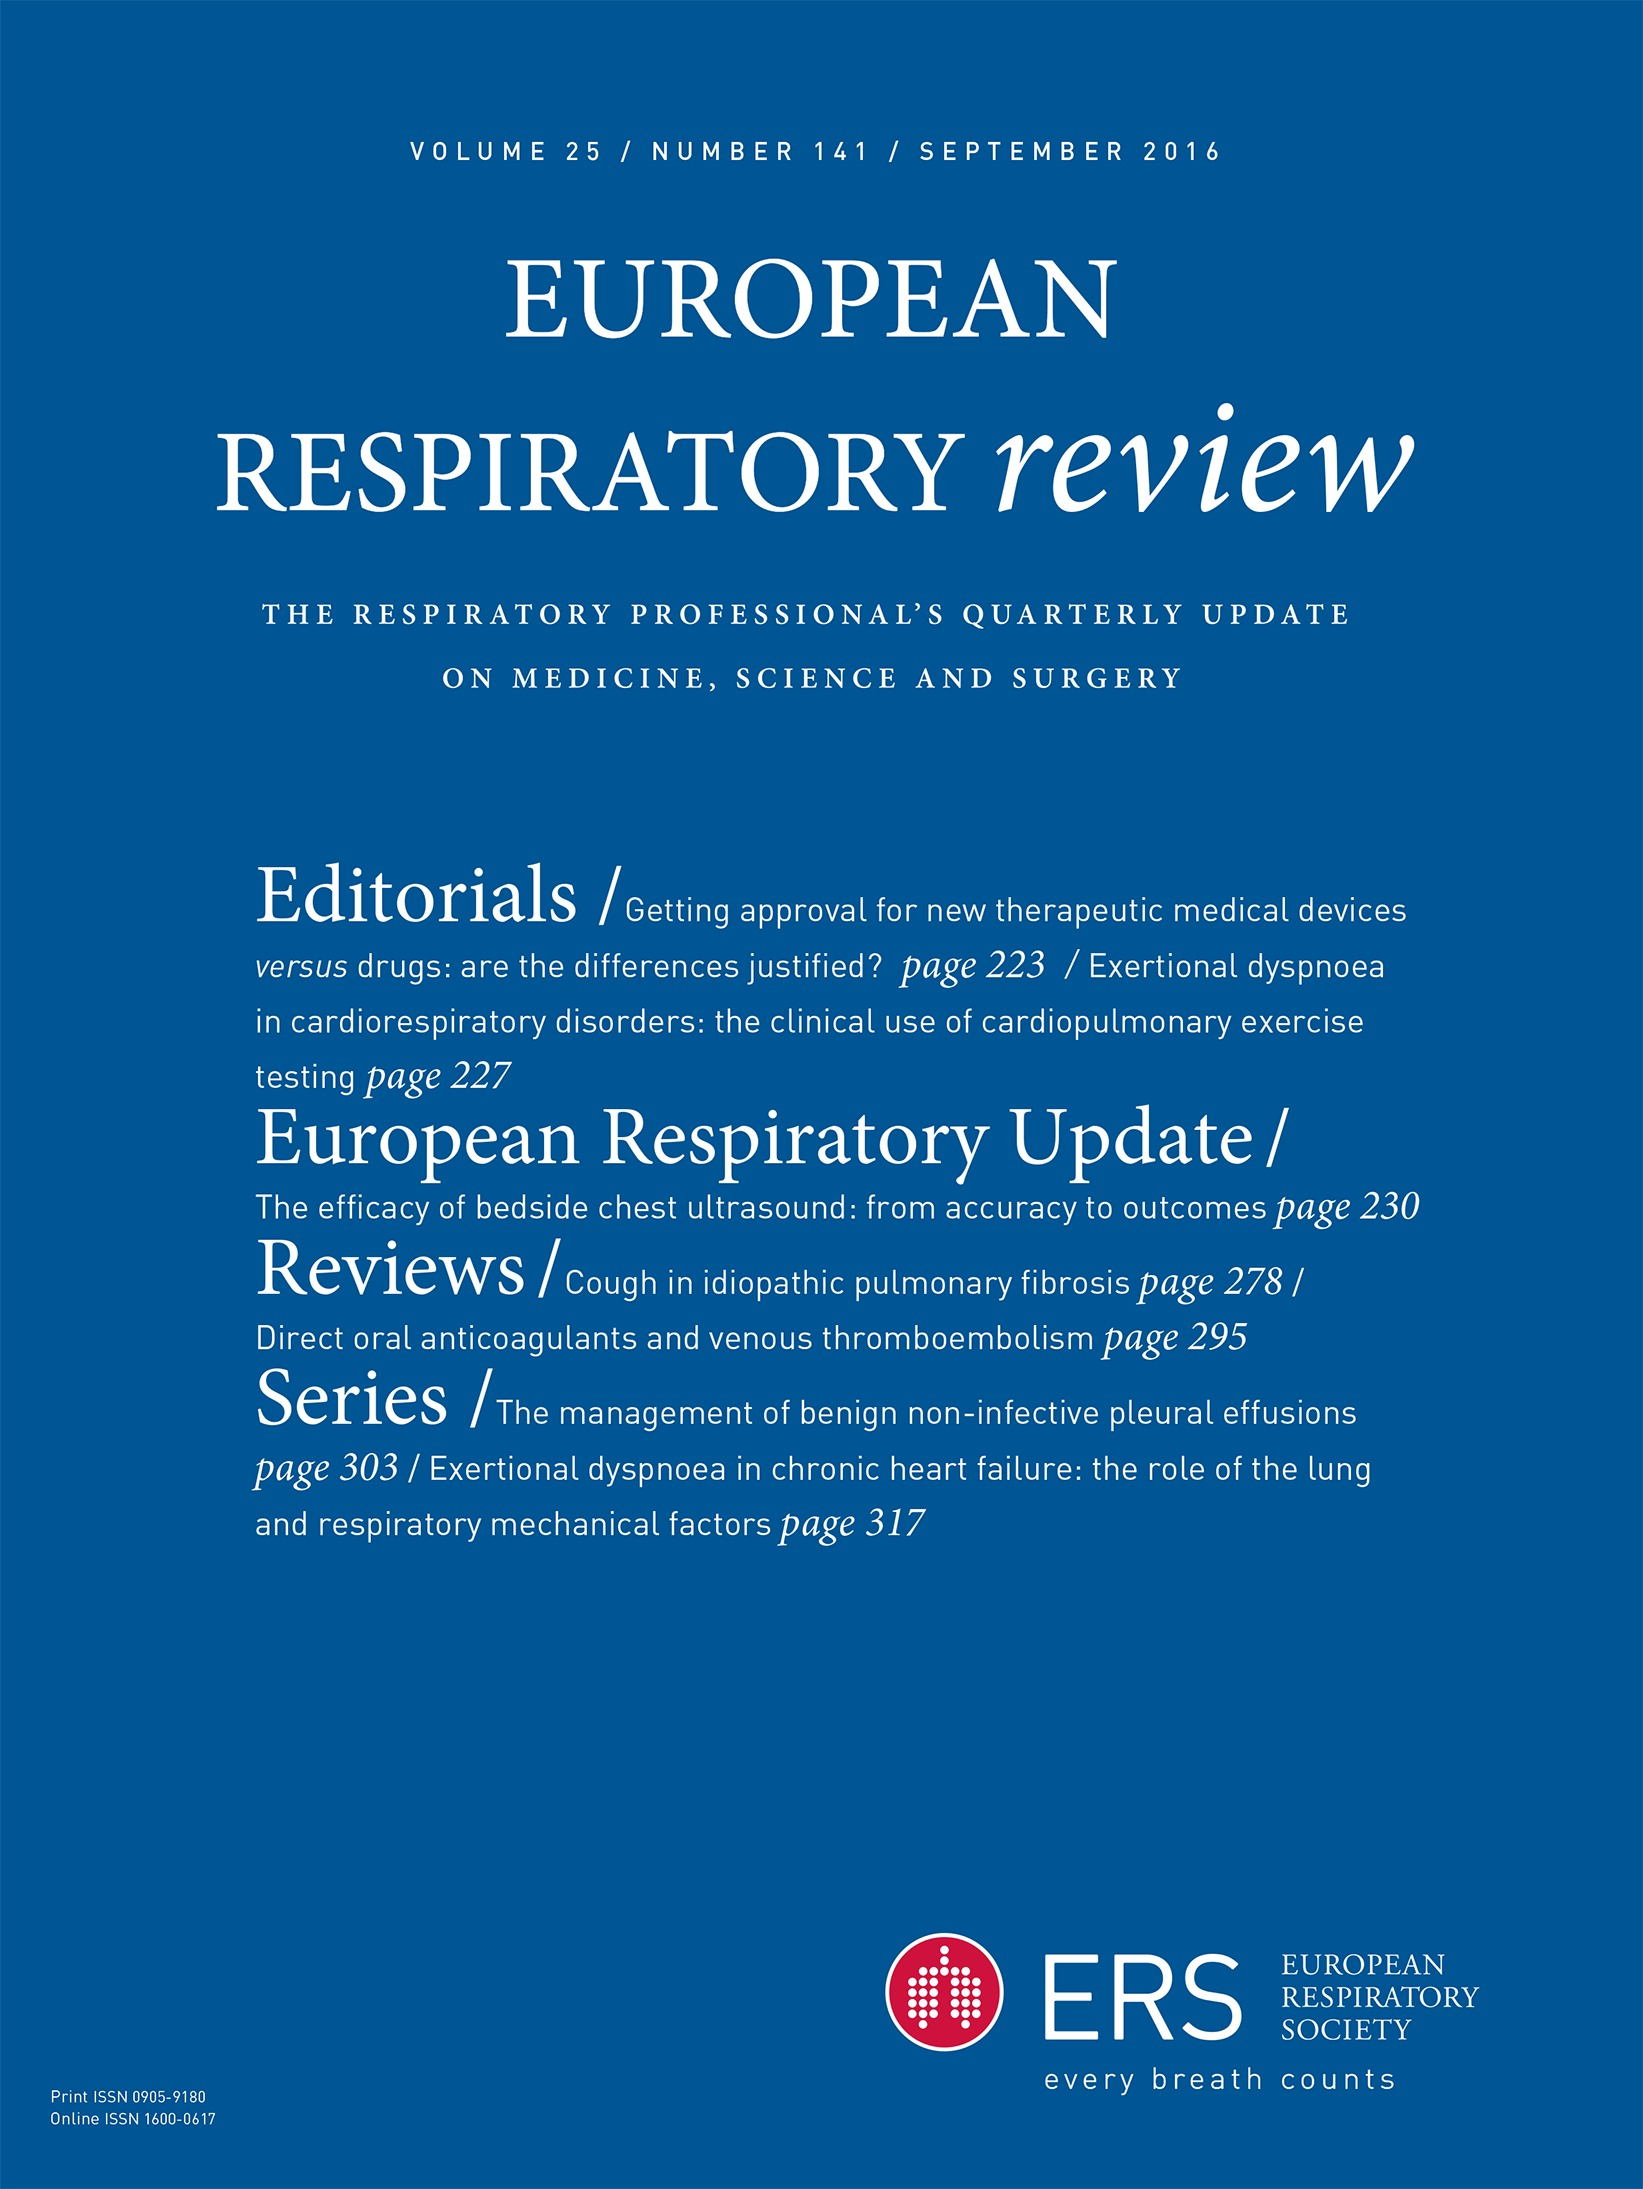 Dysfunctional Breathing A Review Of The Literature And Proposal For